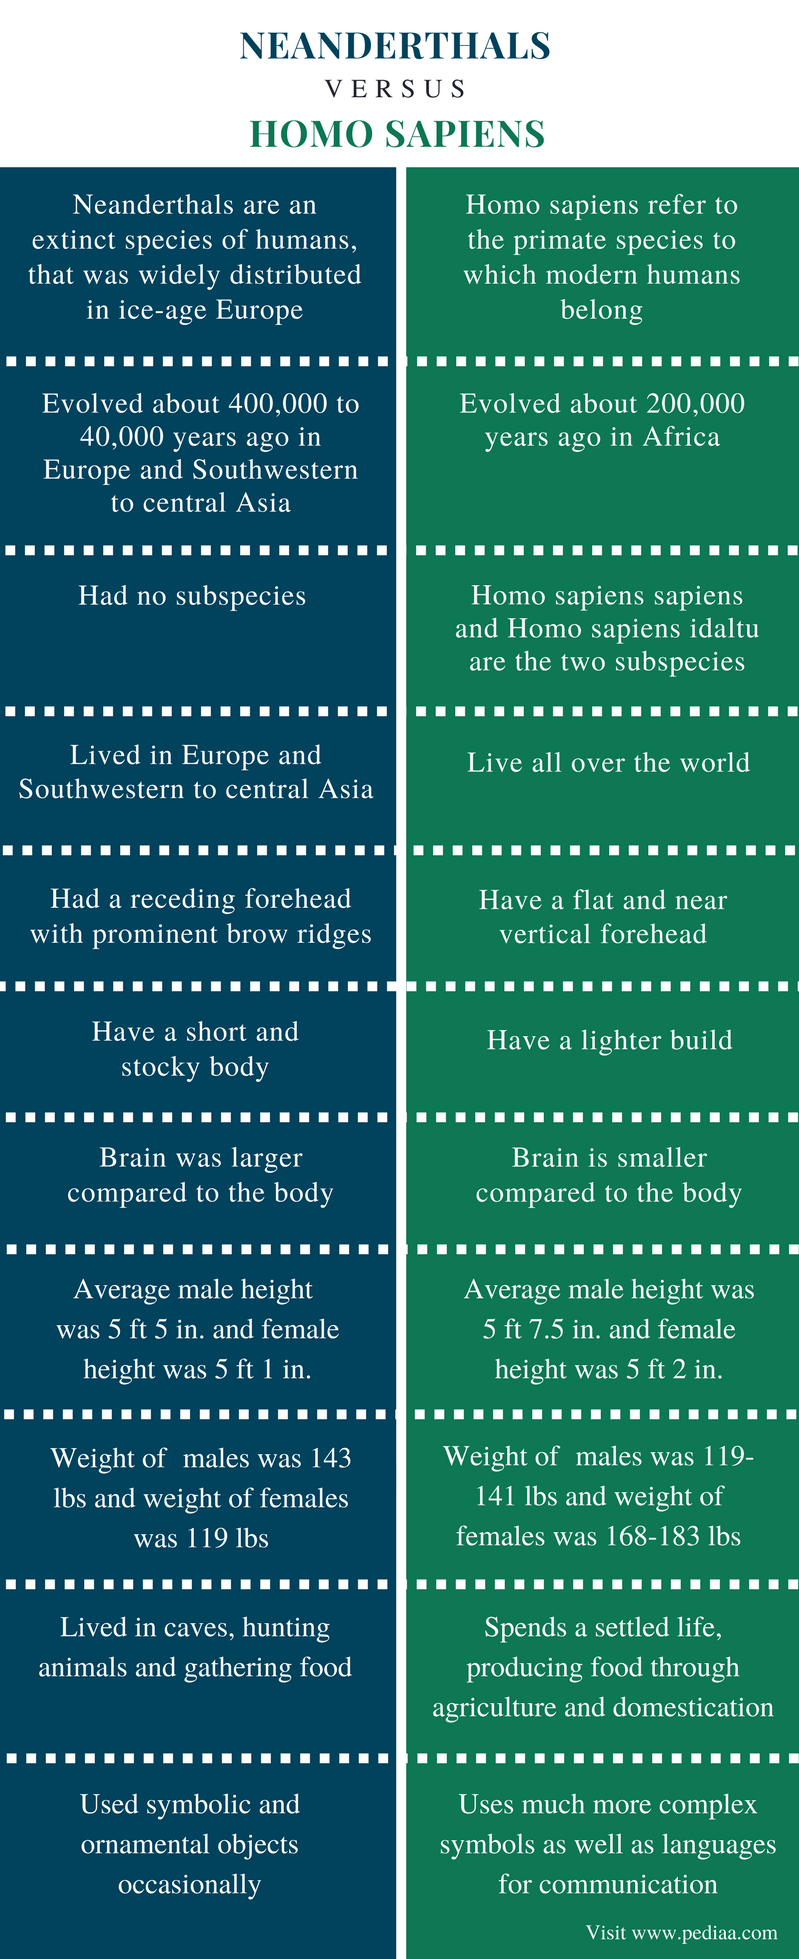 Difference Between Neanderthals and Homo Sapiens - Comparison Summary